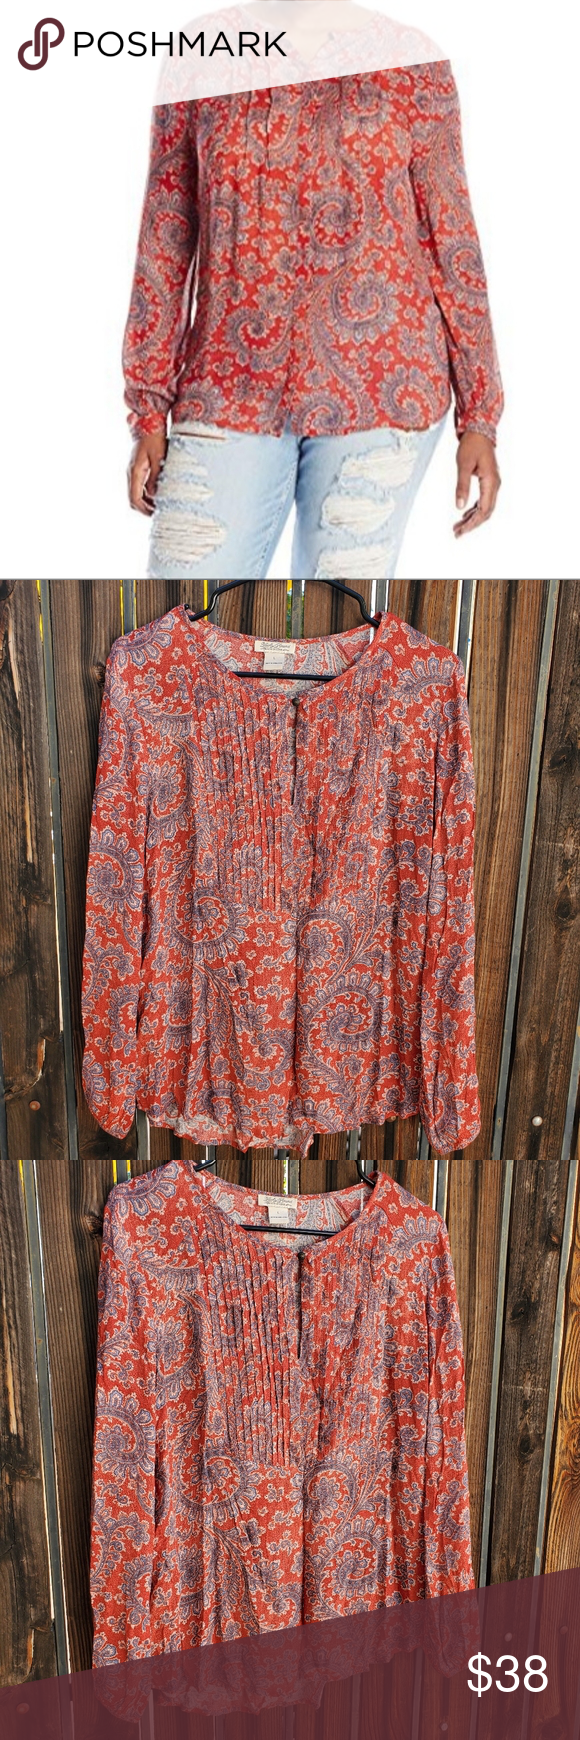 Lucky Brand Pleated Paisley BoHo Peasant Top L Dope paisley print peasant style …